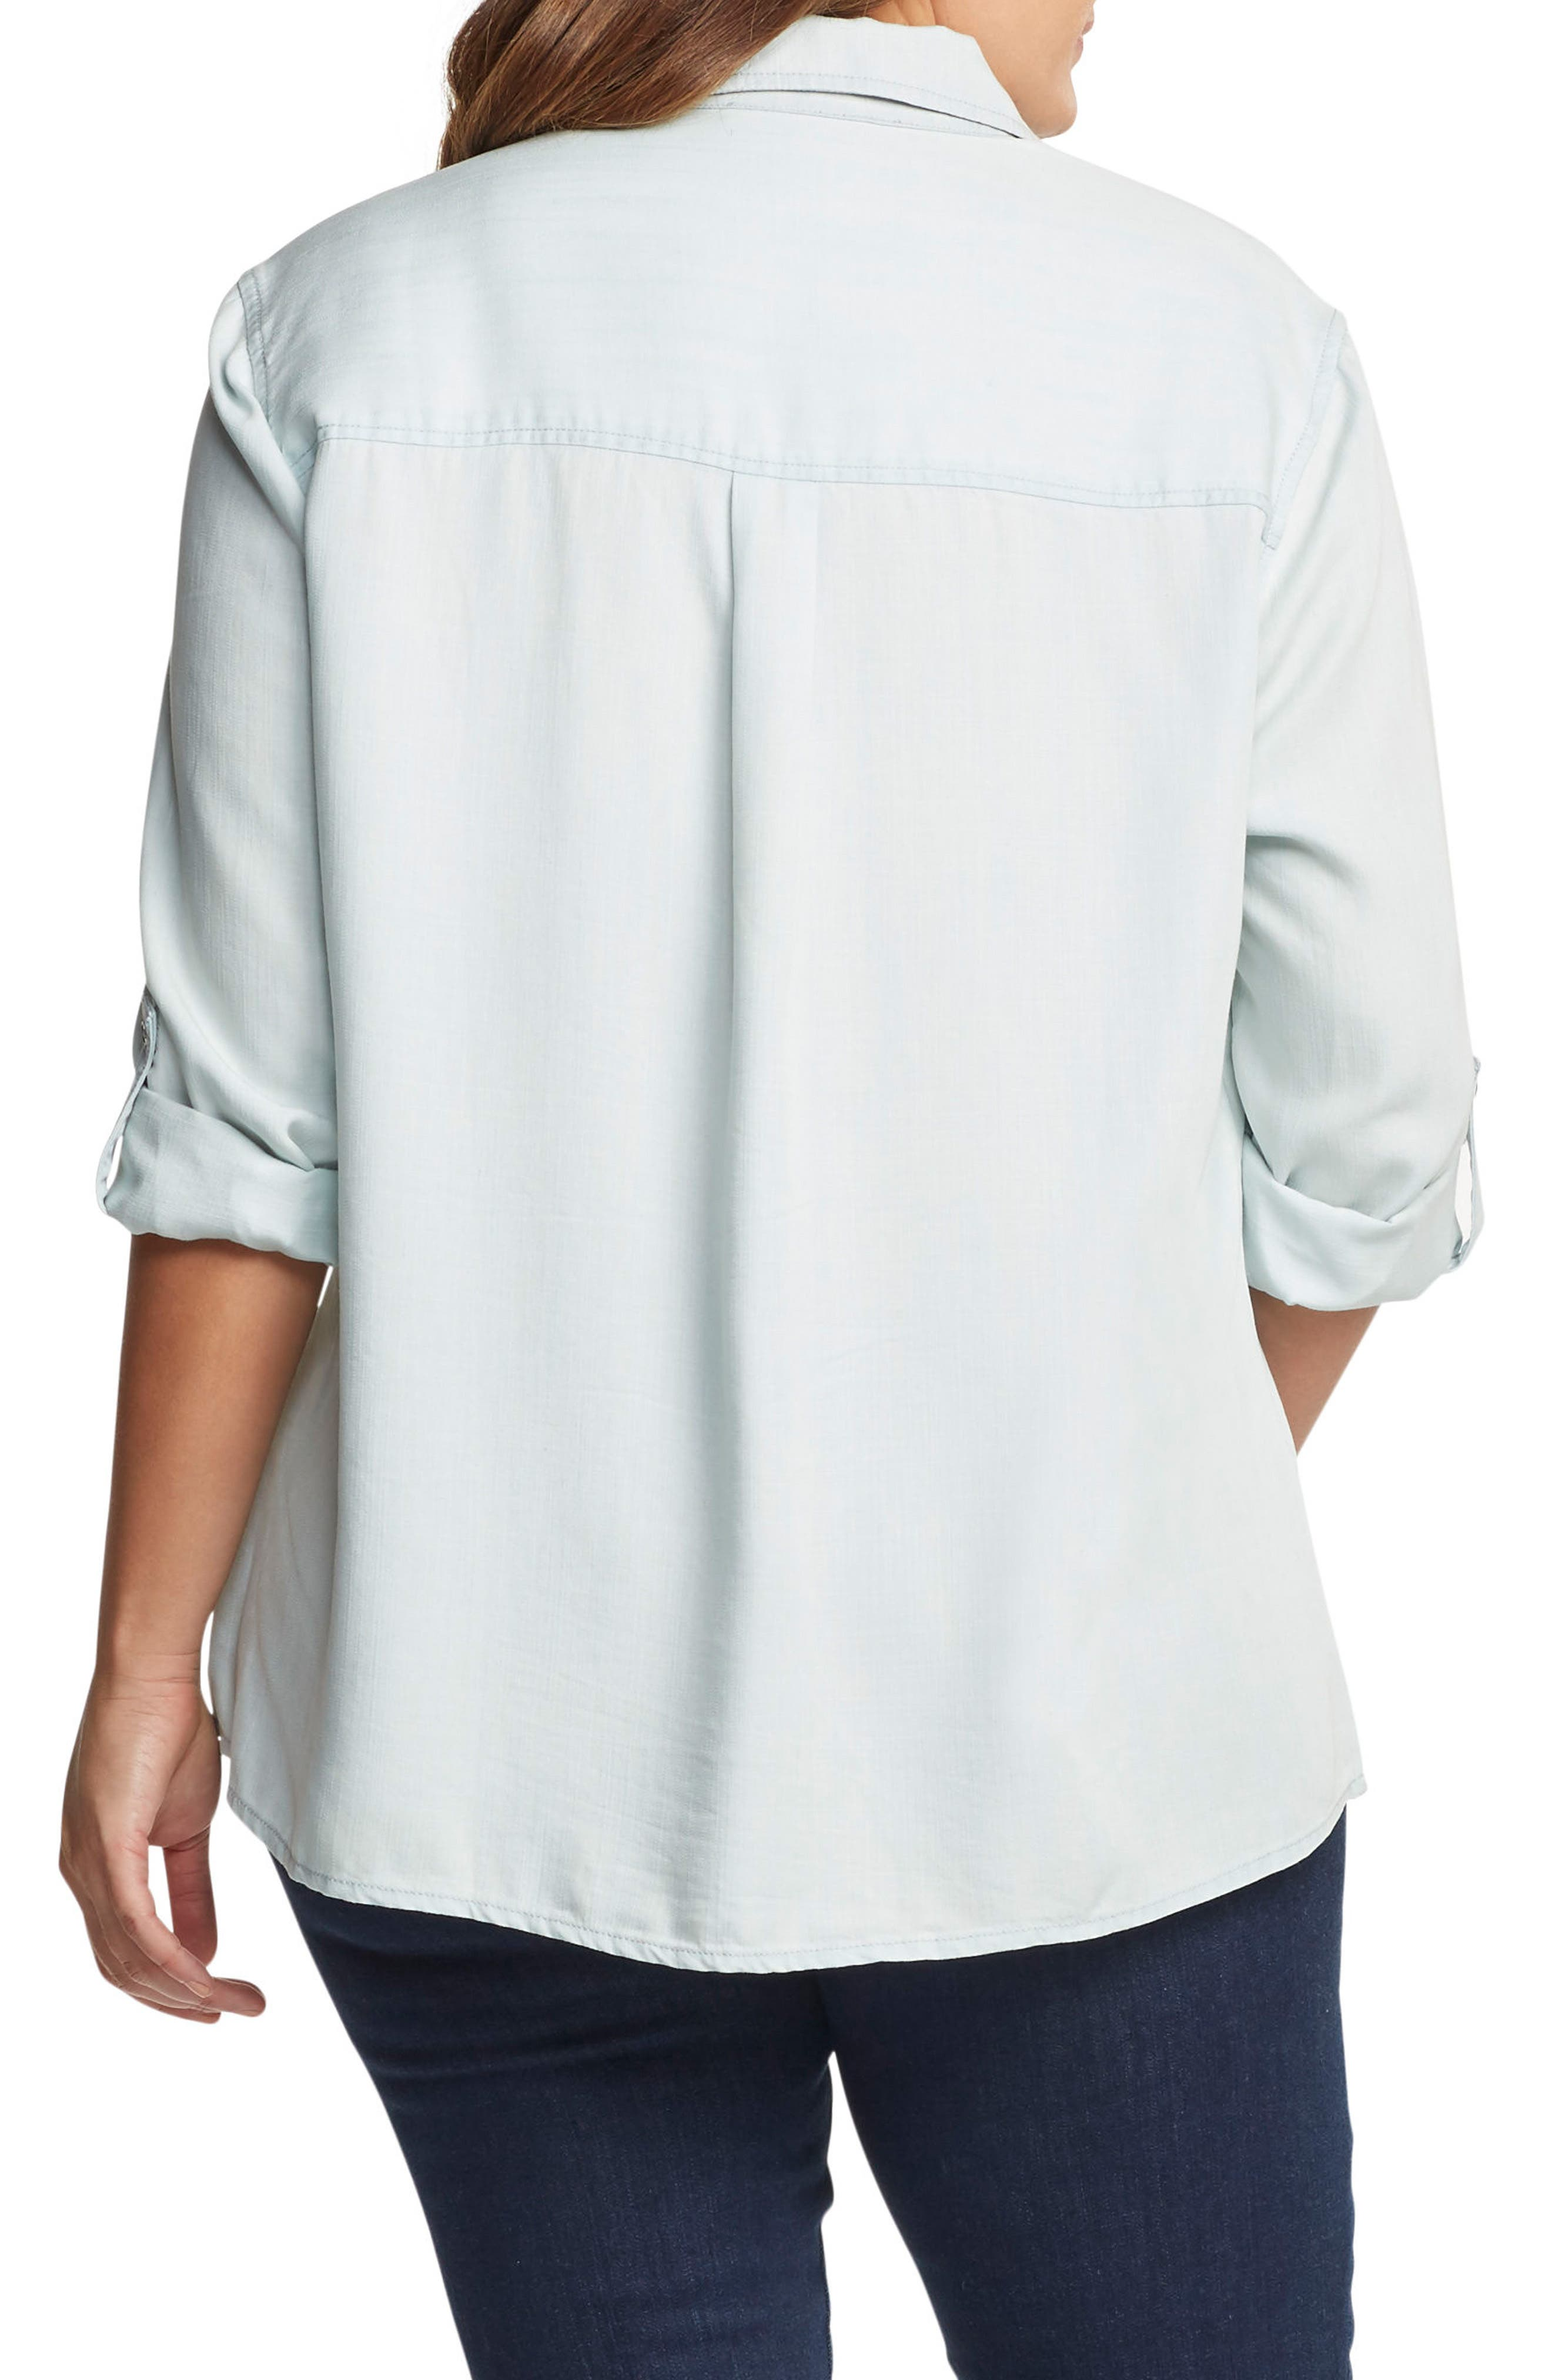 Caroline Roll Sleeve Top,                             Alternate thumbnail 2, color,                             451